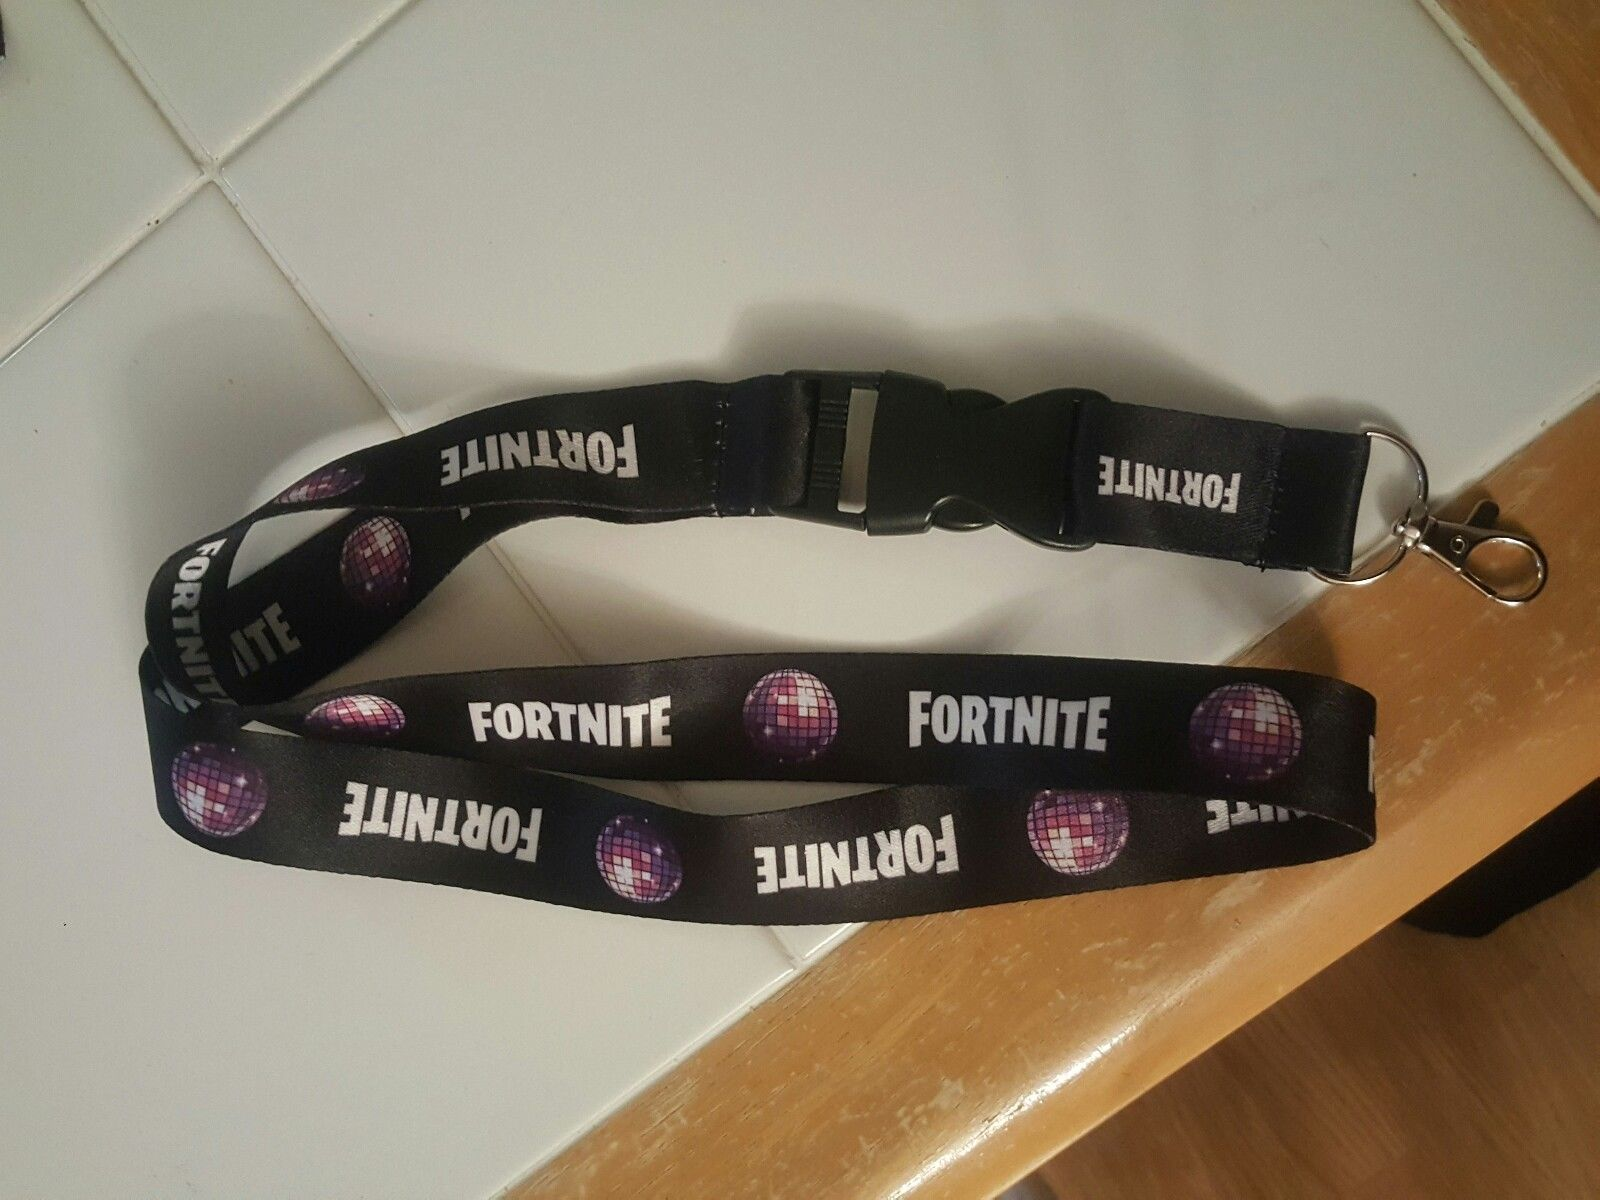 Fortnite Pro Am lanyard E3 exclusive